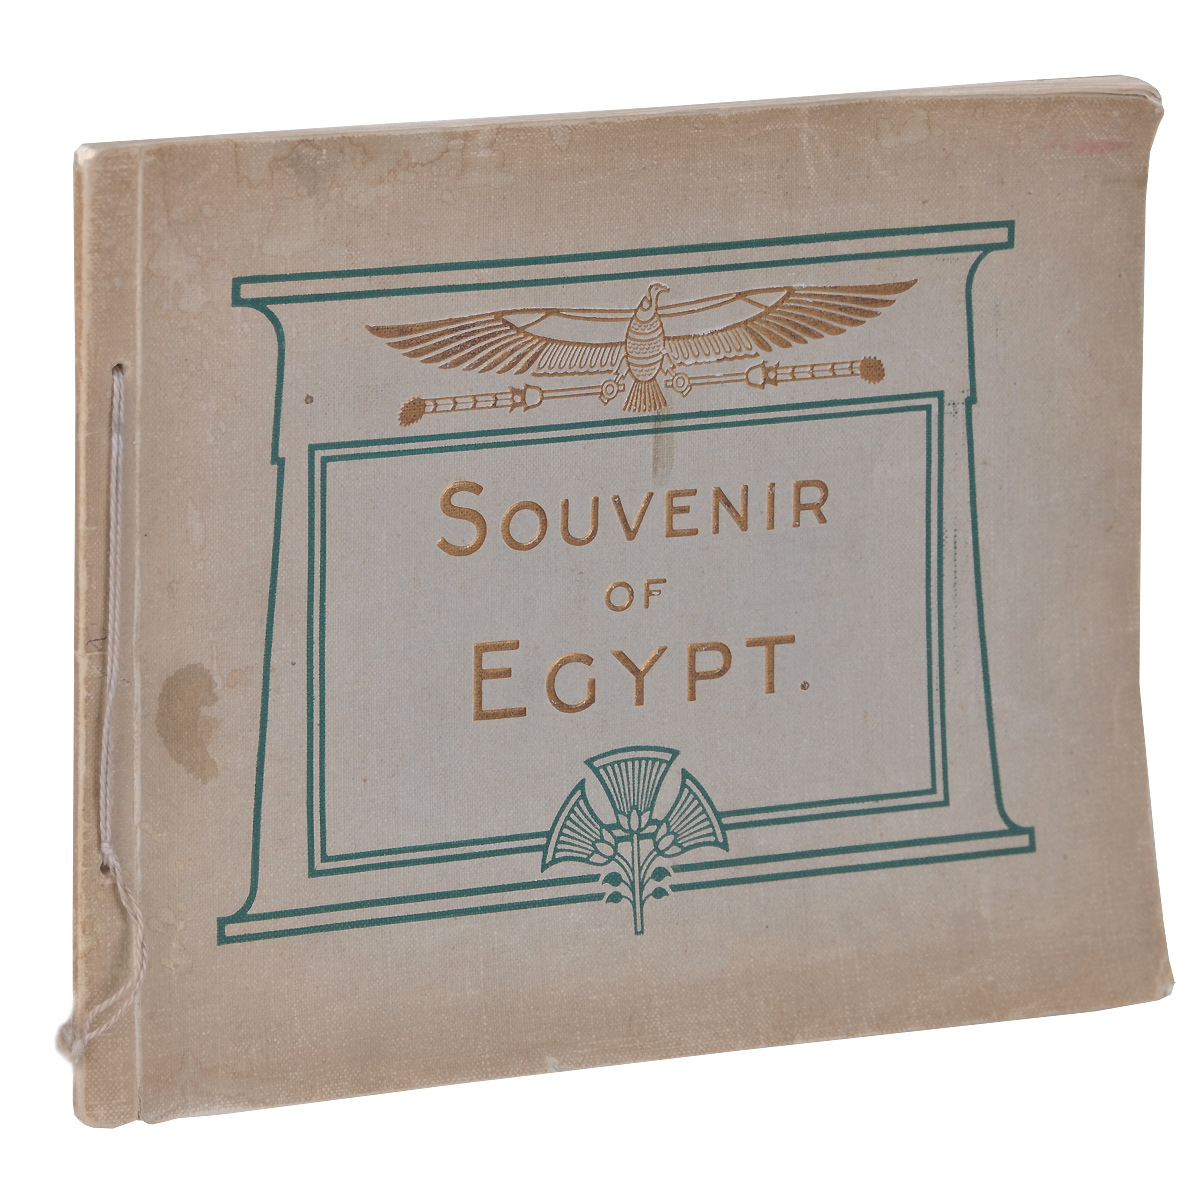 Souvenir of Egypt studies on damped vibration absorbers